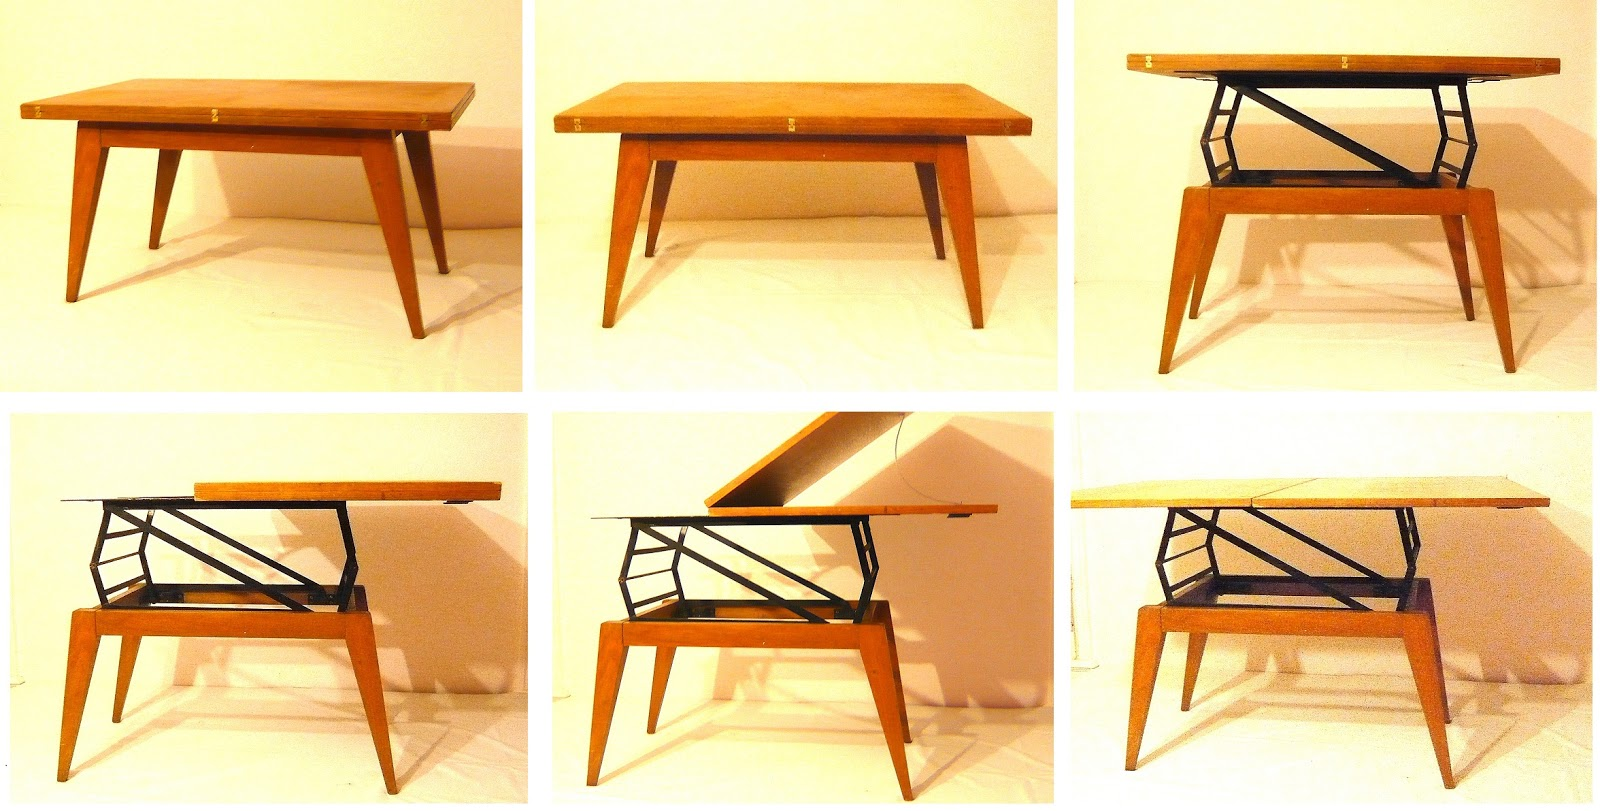 Art utile albert ducrot table r v lation - Table rehaussable but ...